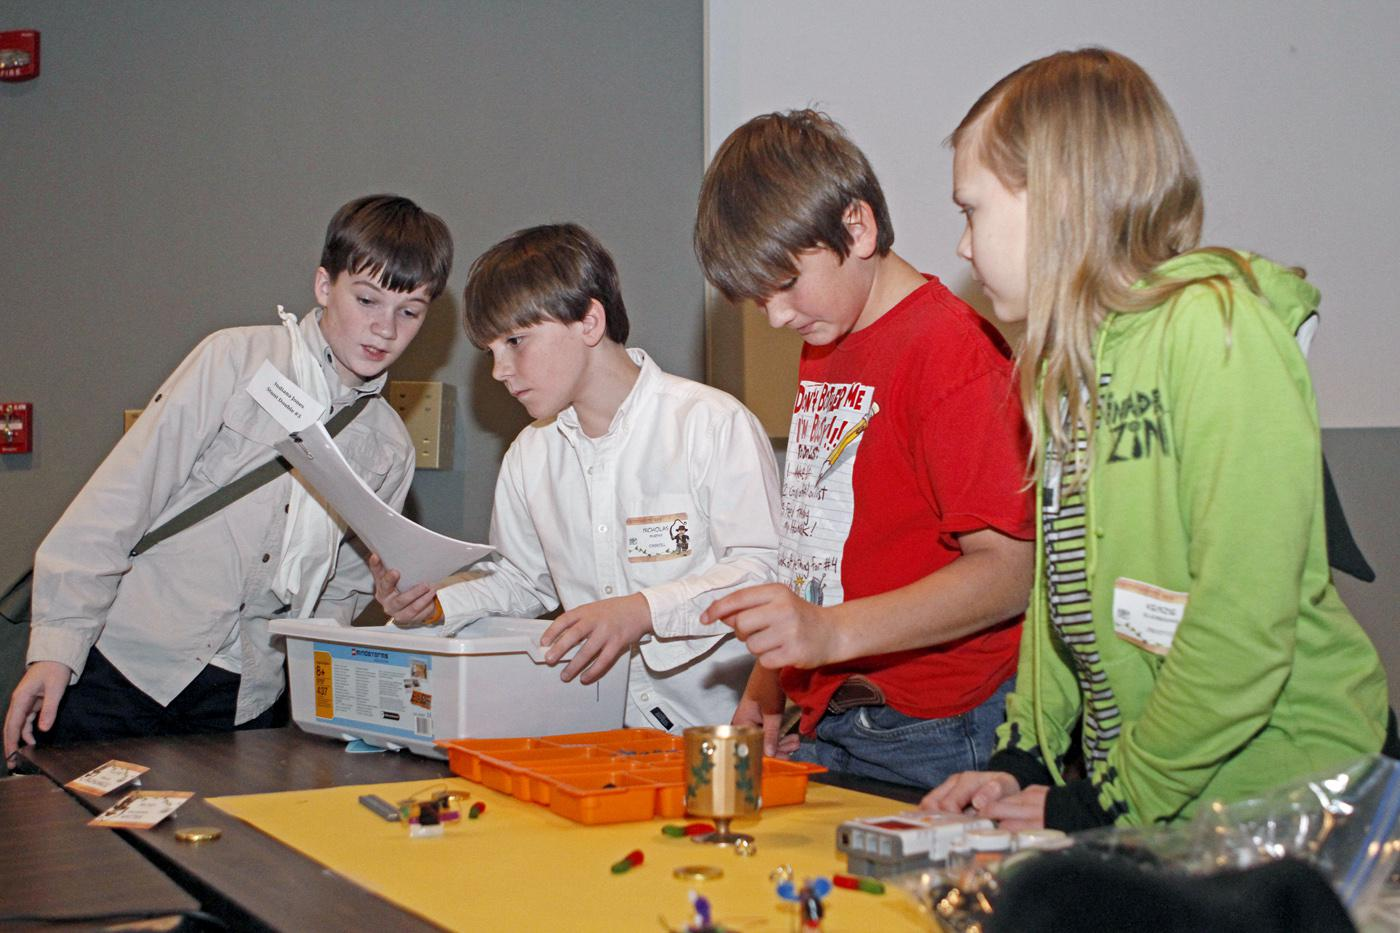 """Jonathan Rodgers of DeSoto County, from left, Nick Murphy of Carroll County, Austin """"Bubba"""" Meriweather of Leflore County and Kenzie Ellenberger of DeSoto County follow instructions to build a robot. The four joined other 4-H youth, volunteer leaders and agents at the recent kick-off of the 2012 robotics project at Mississippi State University. (Submitted Photo)"""